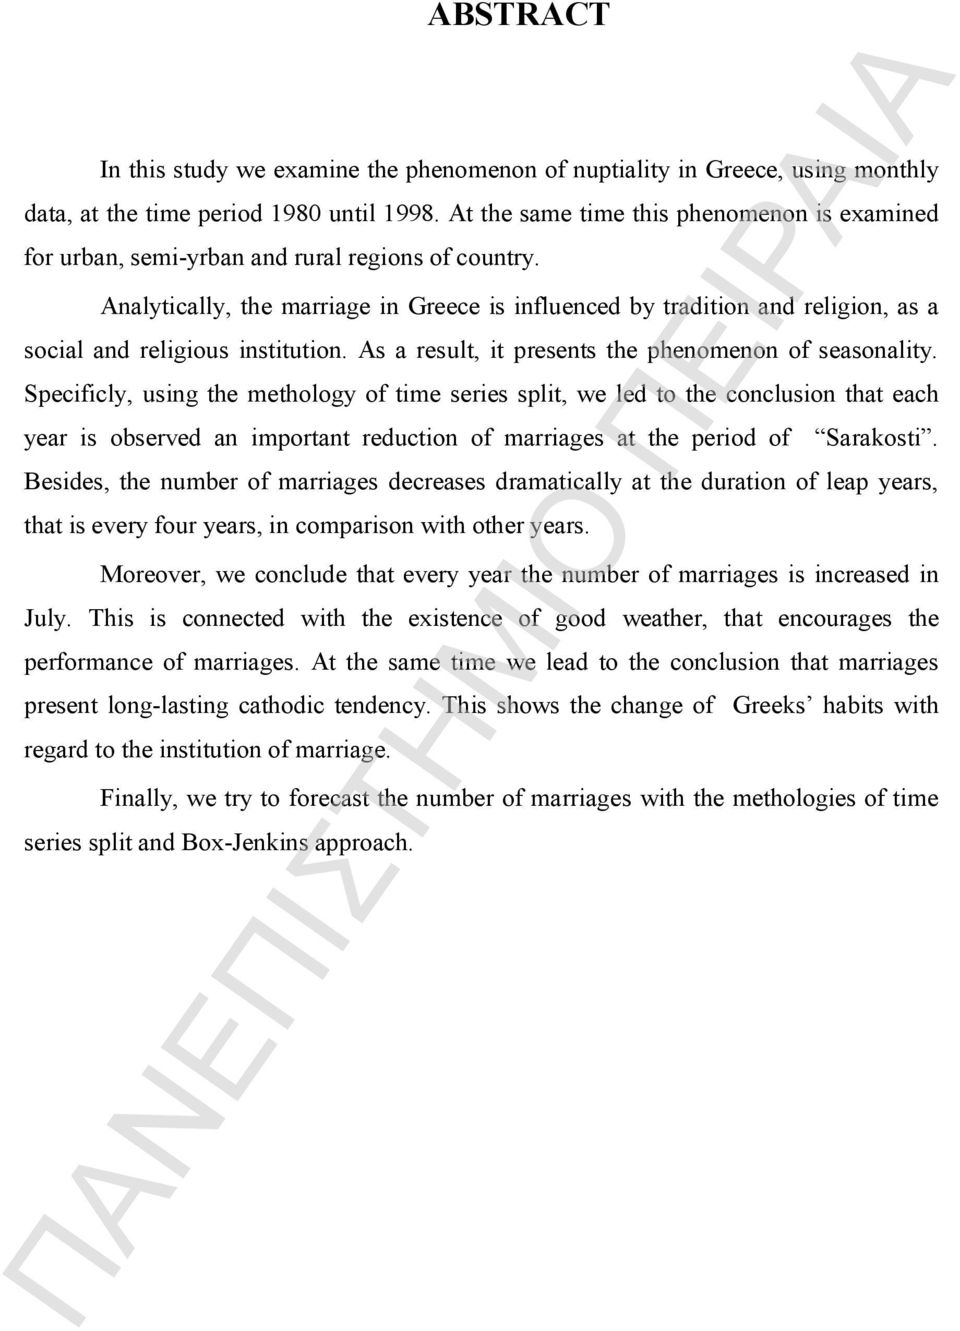 Analytically, the marriage in Greece is influenced by tradition and religion, as a social and religious institution. As a result, it presents the phenomenon of seasonality.